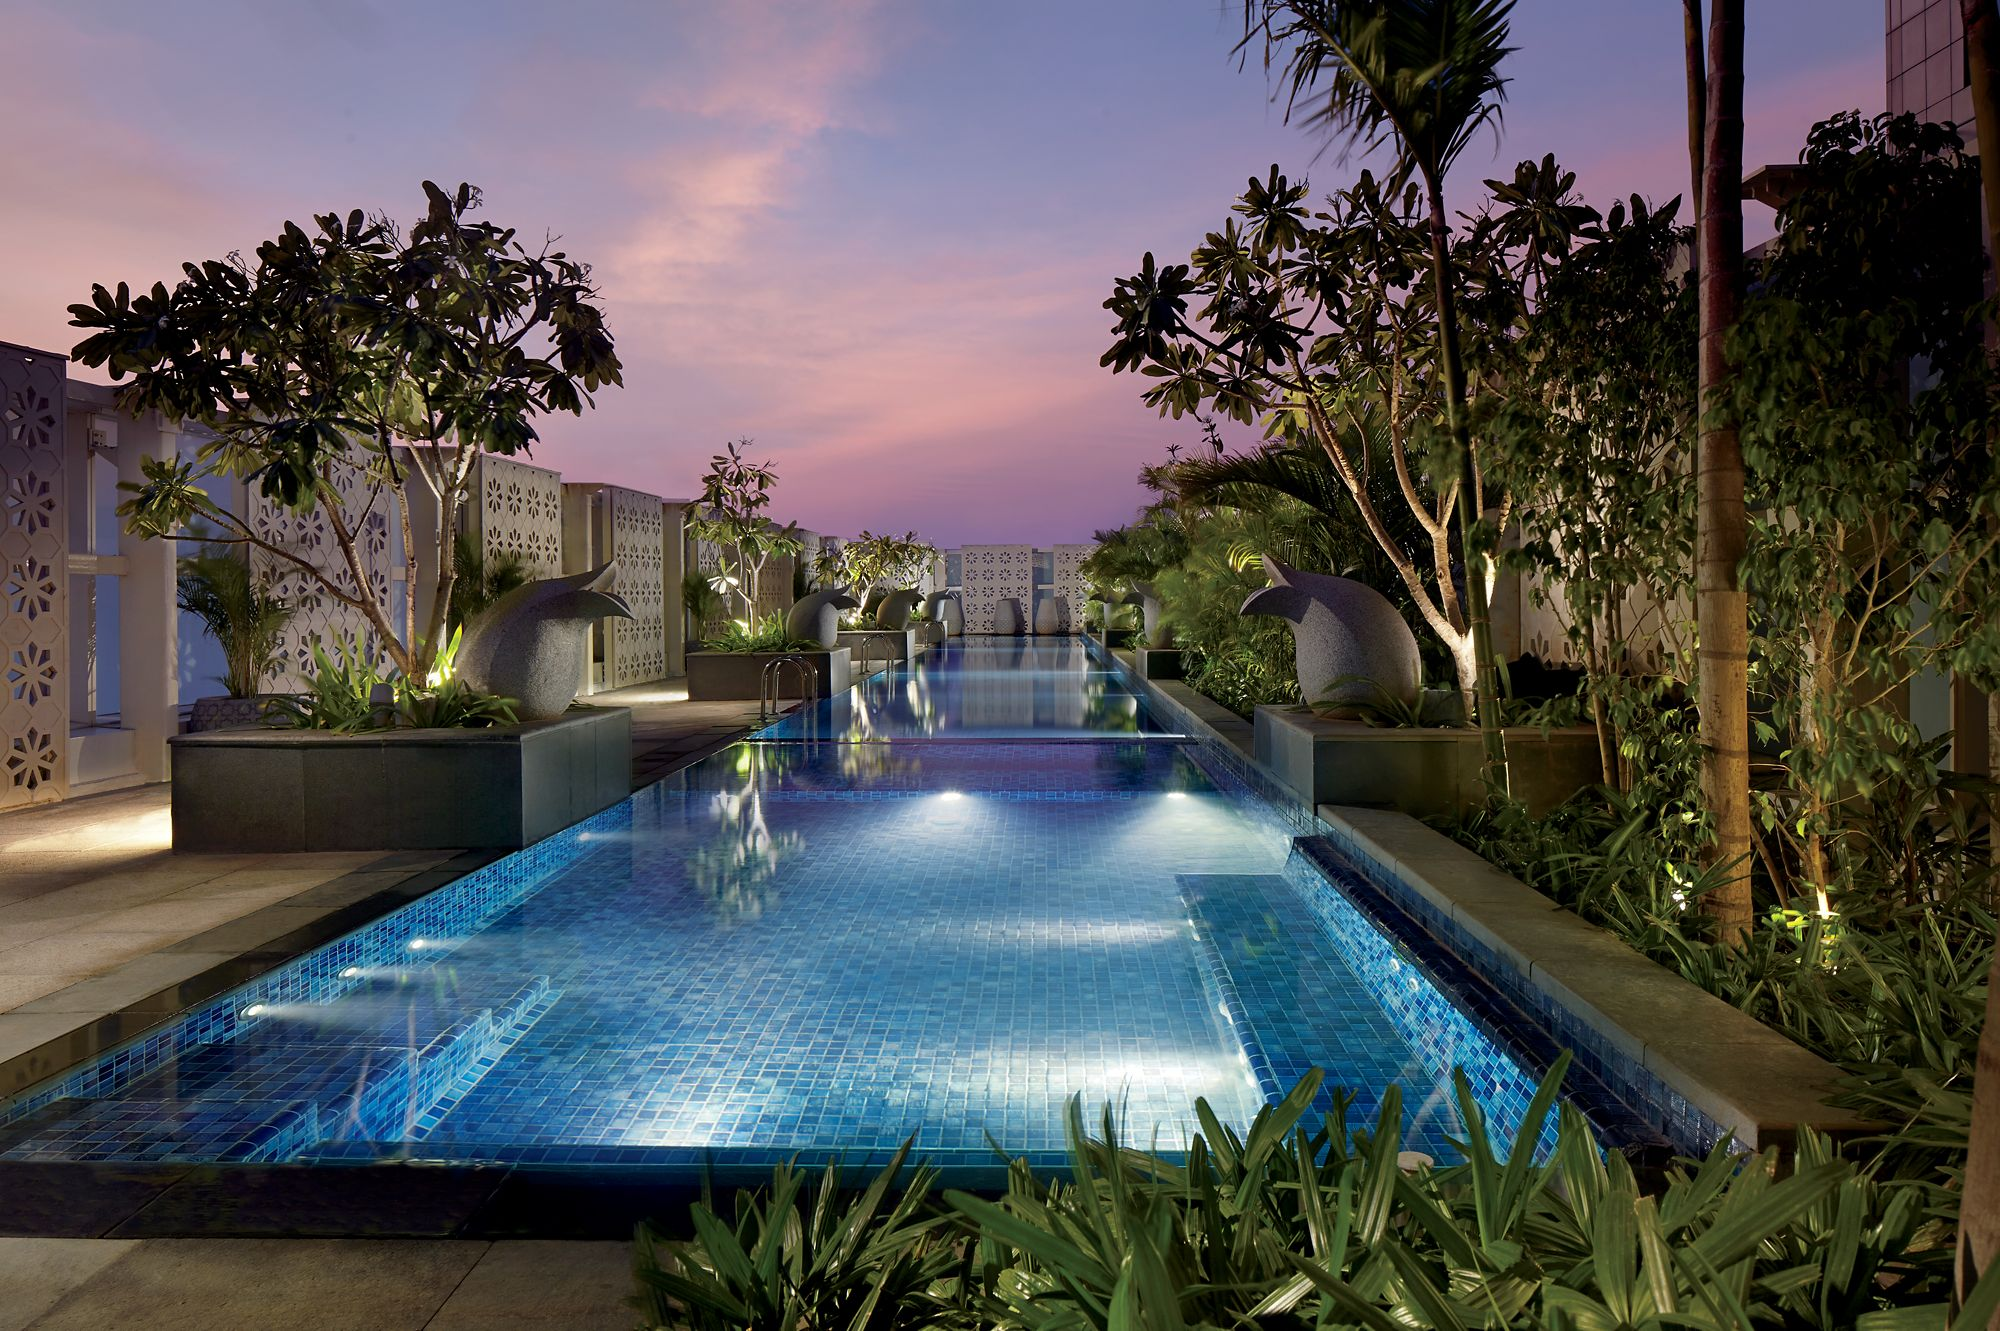 Long, rectangular pool surrounded by lush plantings as a pink and purple sunset settles over the sky